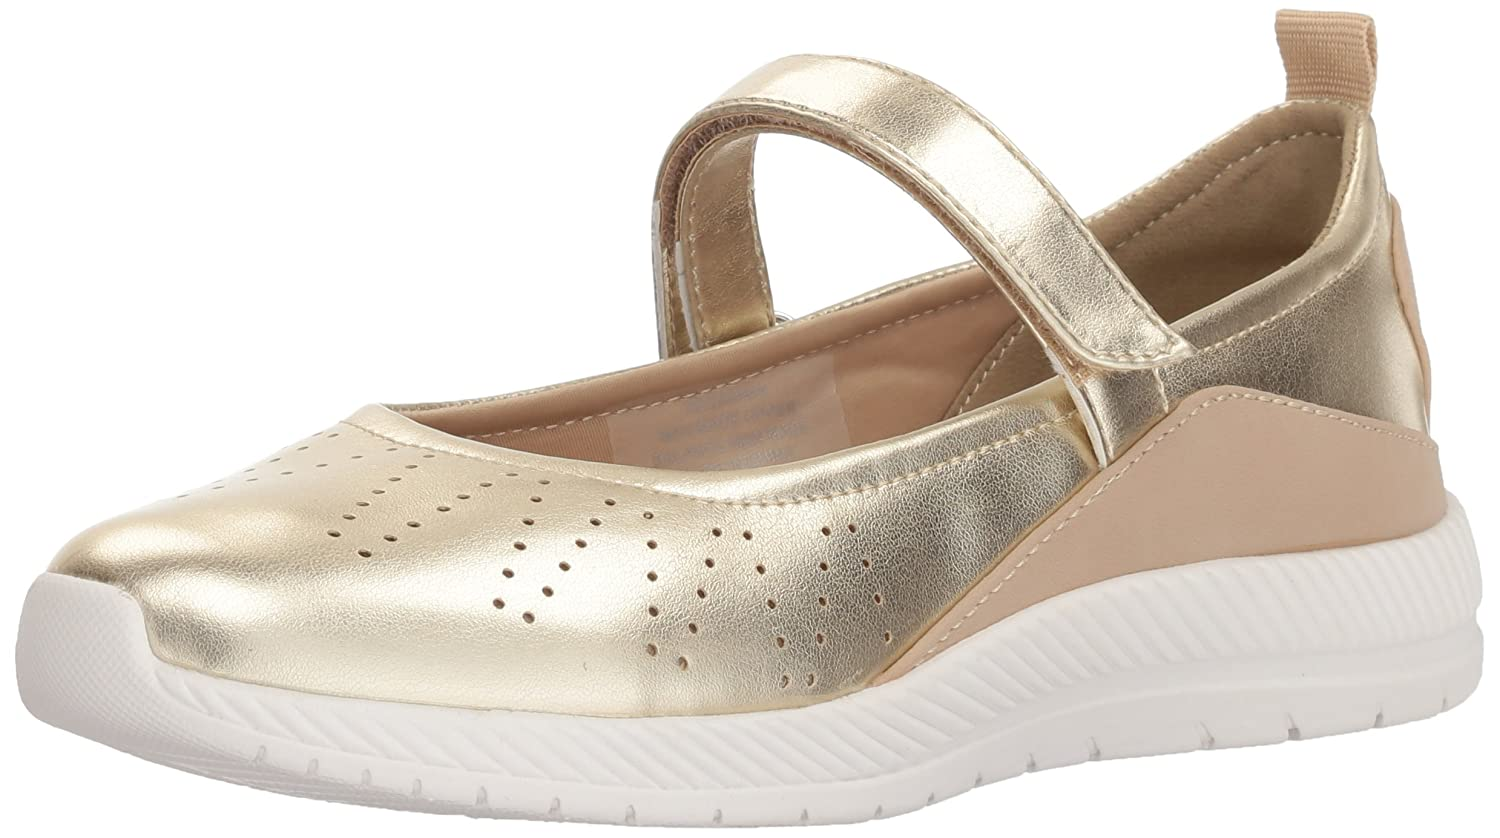 Easy Spirit Women's Garima Mary Jane Flat B077Y8KH62 6 B(M) US|Gold